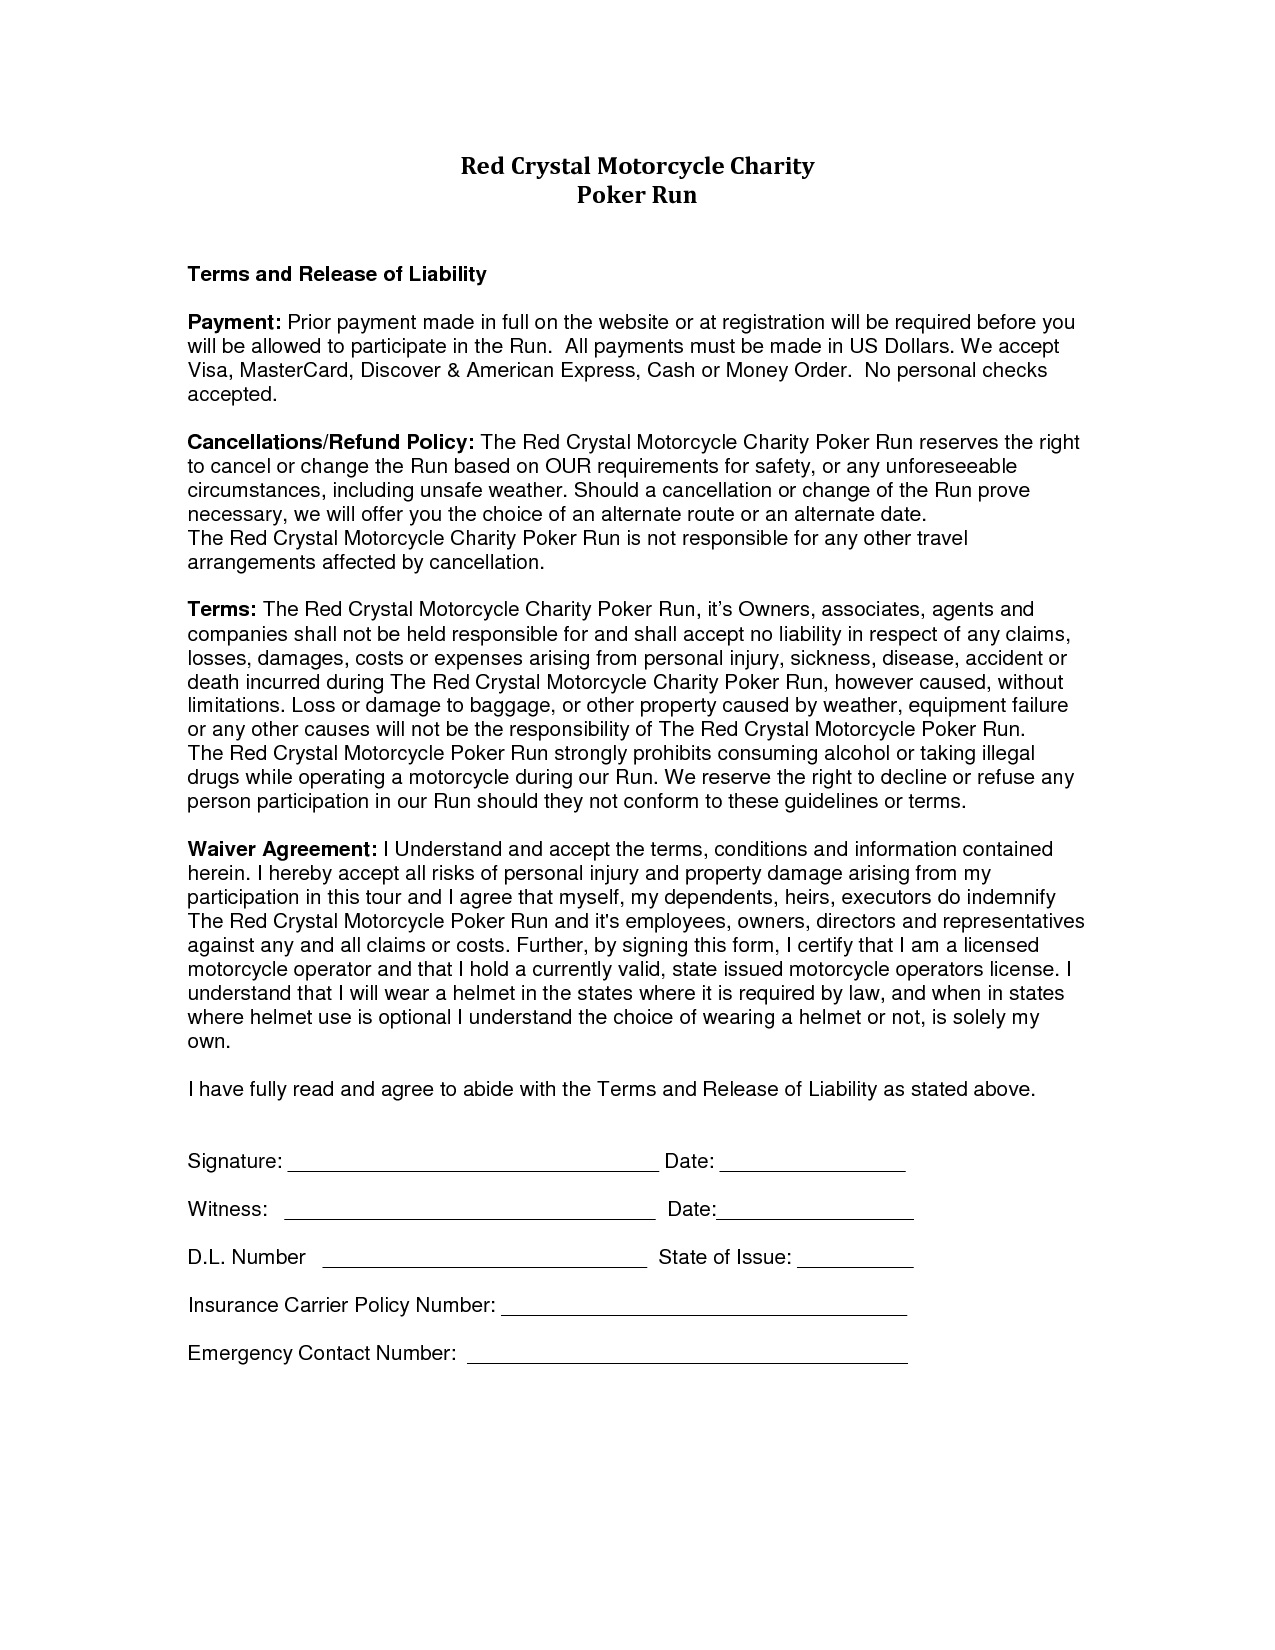 Equipment Liability Release Form Template   Invitation Templates   Release  Of Liability Sample